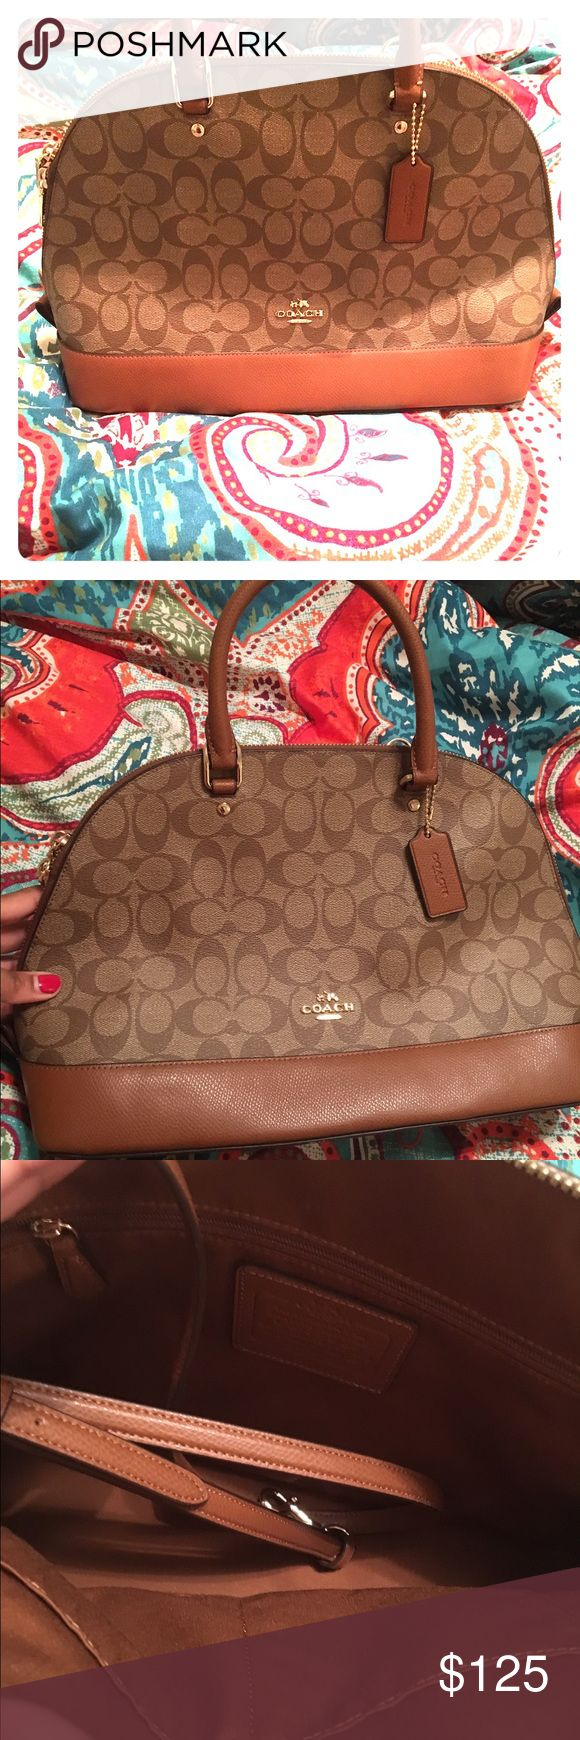 Brand New Coach Satchel! Only worn once! 👜👠 Great cream and beige Coach Satchel! Brand new only worn once. I'm more of a black purse kind of lady! Originally $350 from the Coach Store. Great for work and play! Coach Bags Satchels